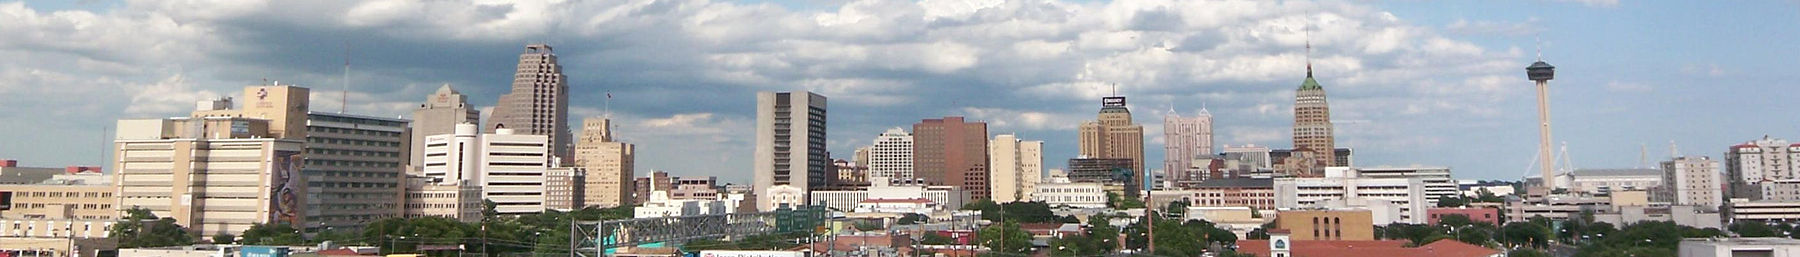 San Antonio banner downtown panorama.jpg